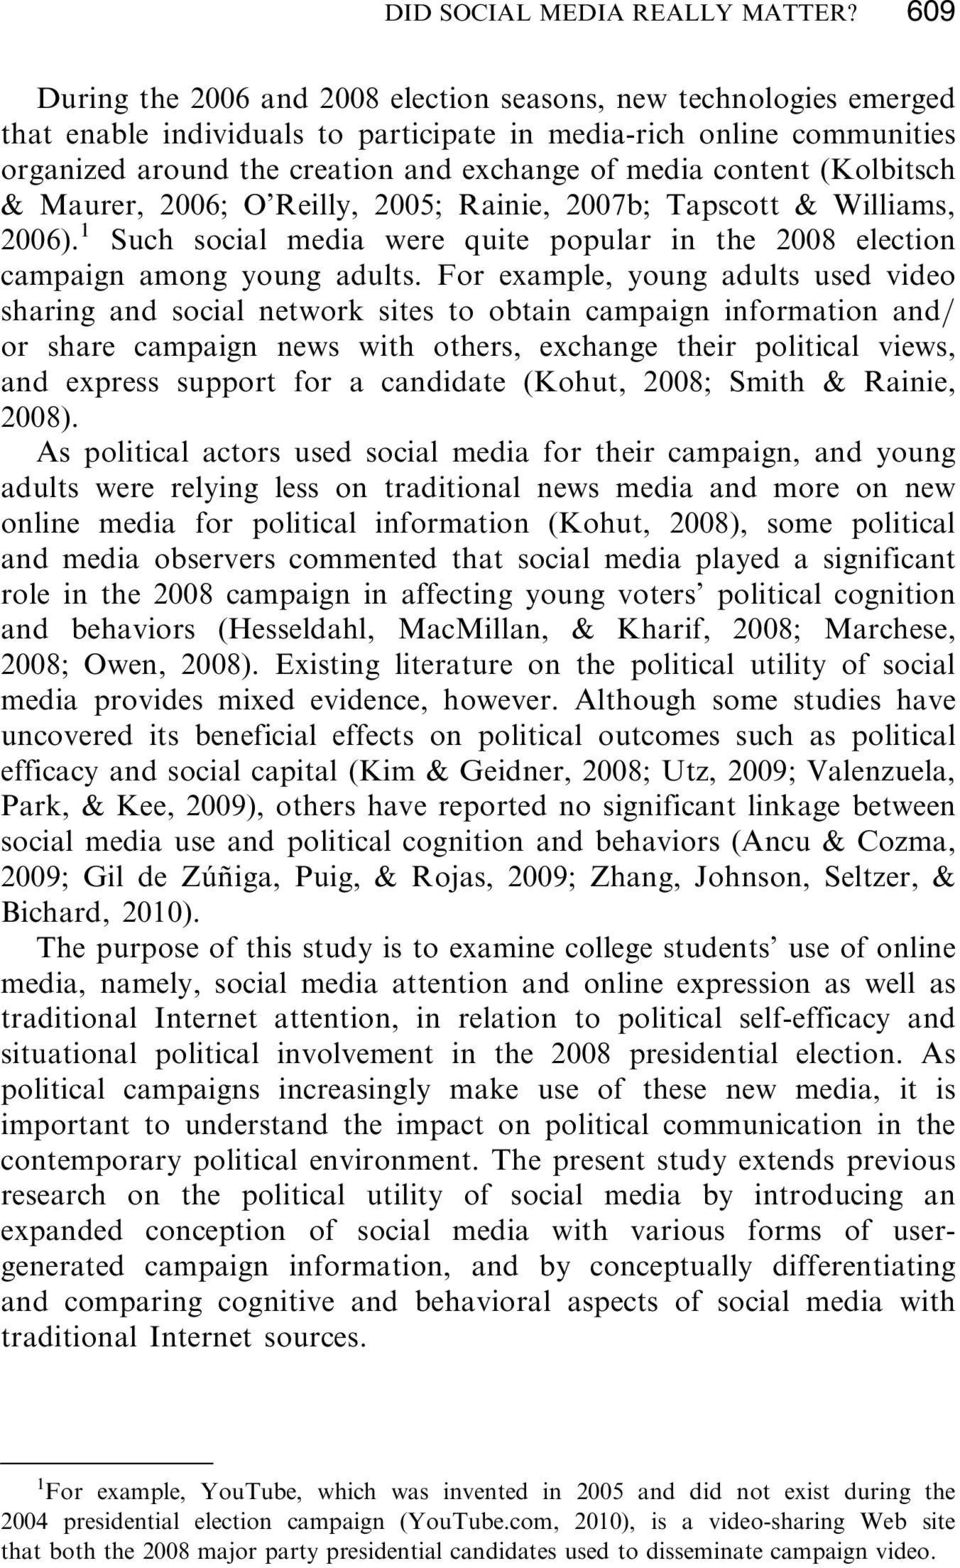 content (Kolbitsch & Maurer, 2006; O Reilly, 2005; Rainie, 2007b; Tapscott & Williams, 2006). 1 Such social media were quite popular in the 2008 election campaign among young adults.